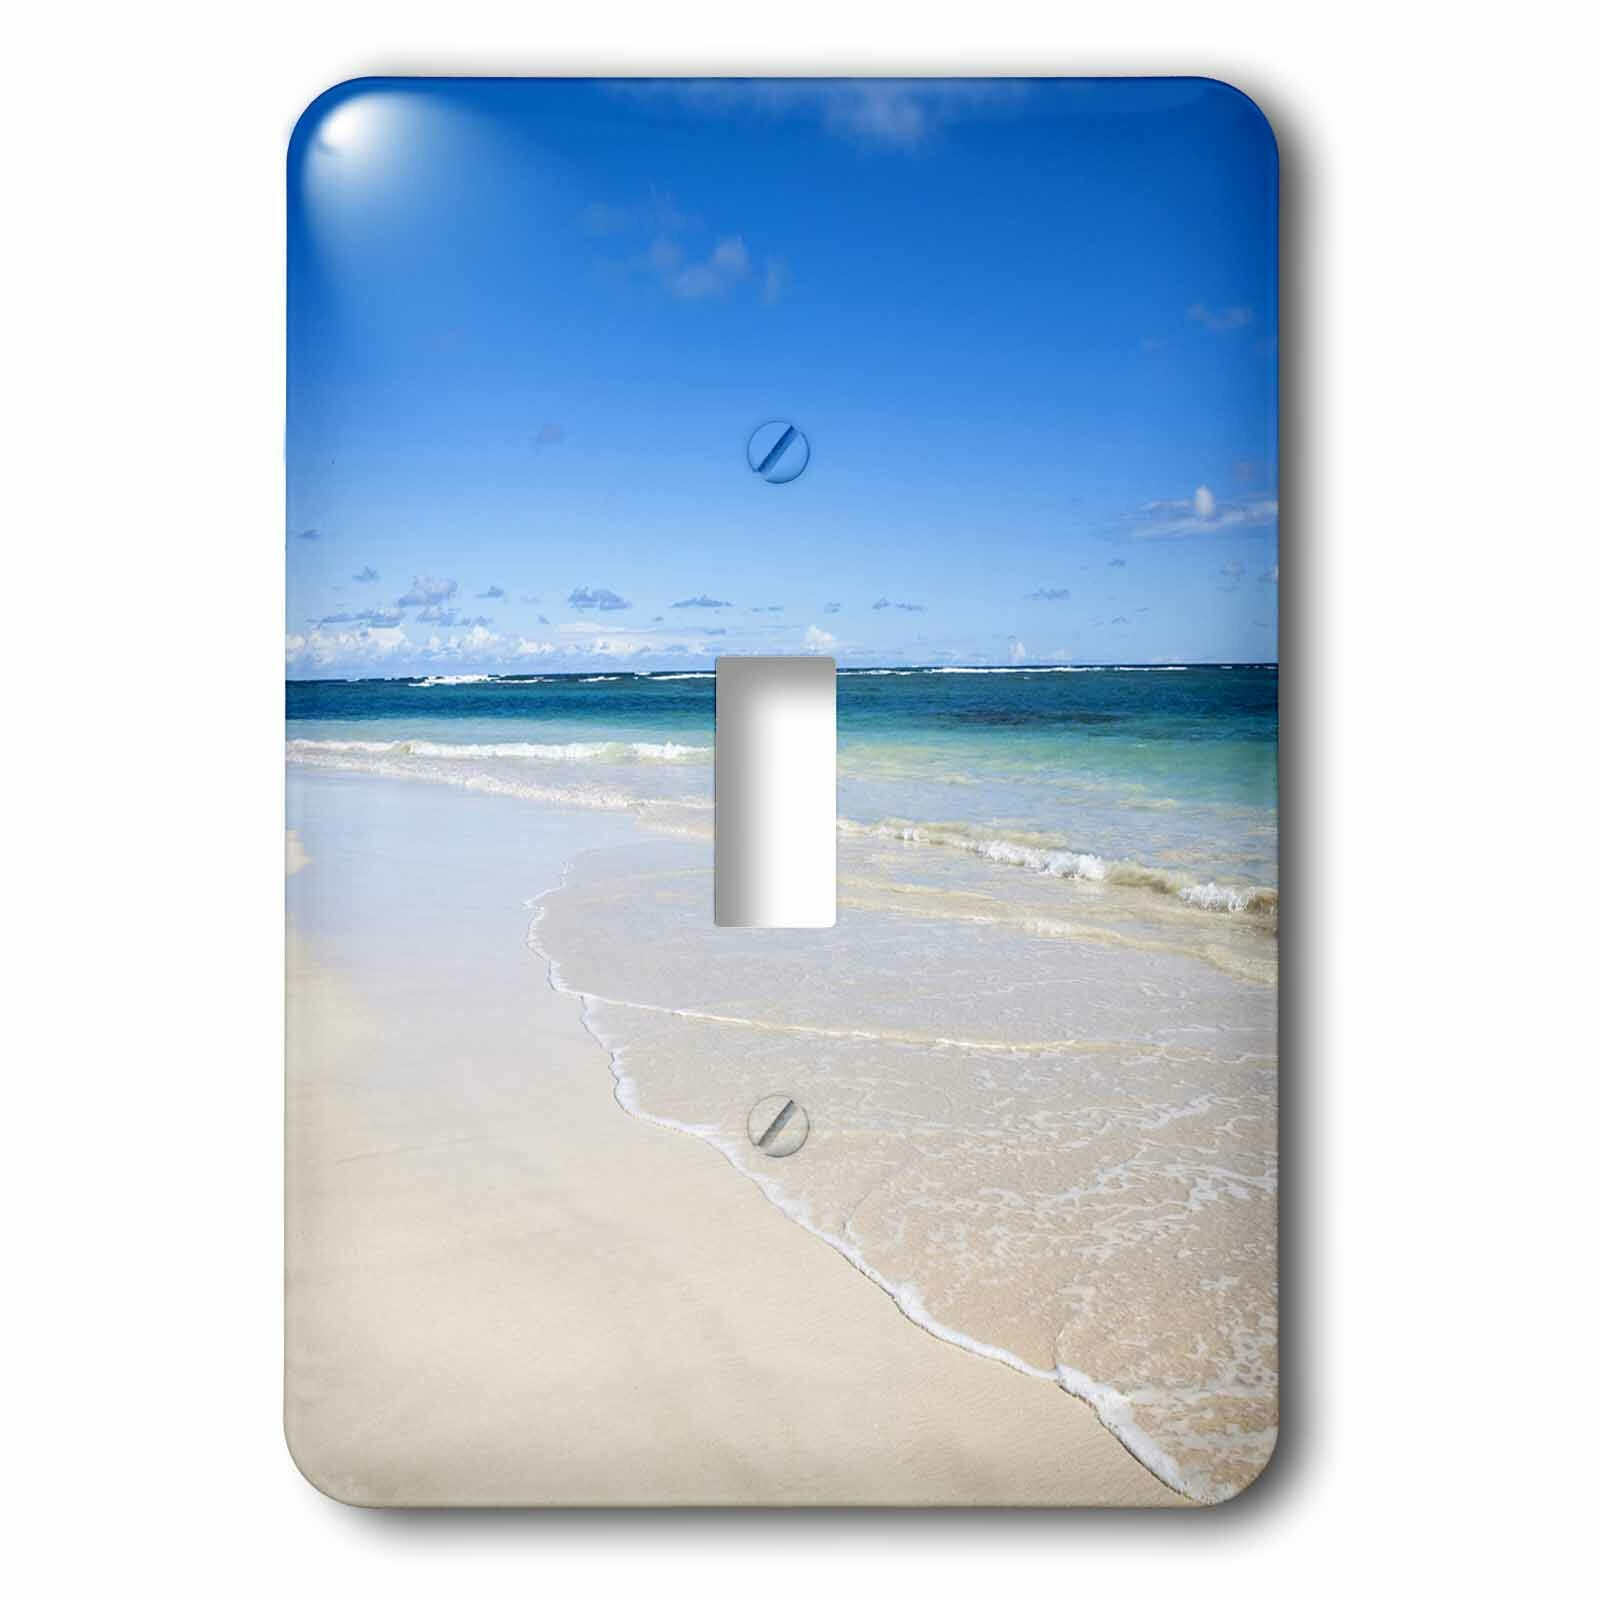 3drose Tropical Beach 1 Gang Toggle Light Switch Wall Plate Wayfair